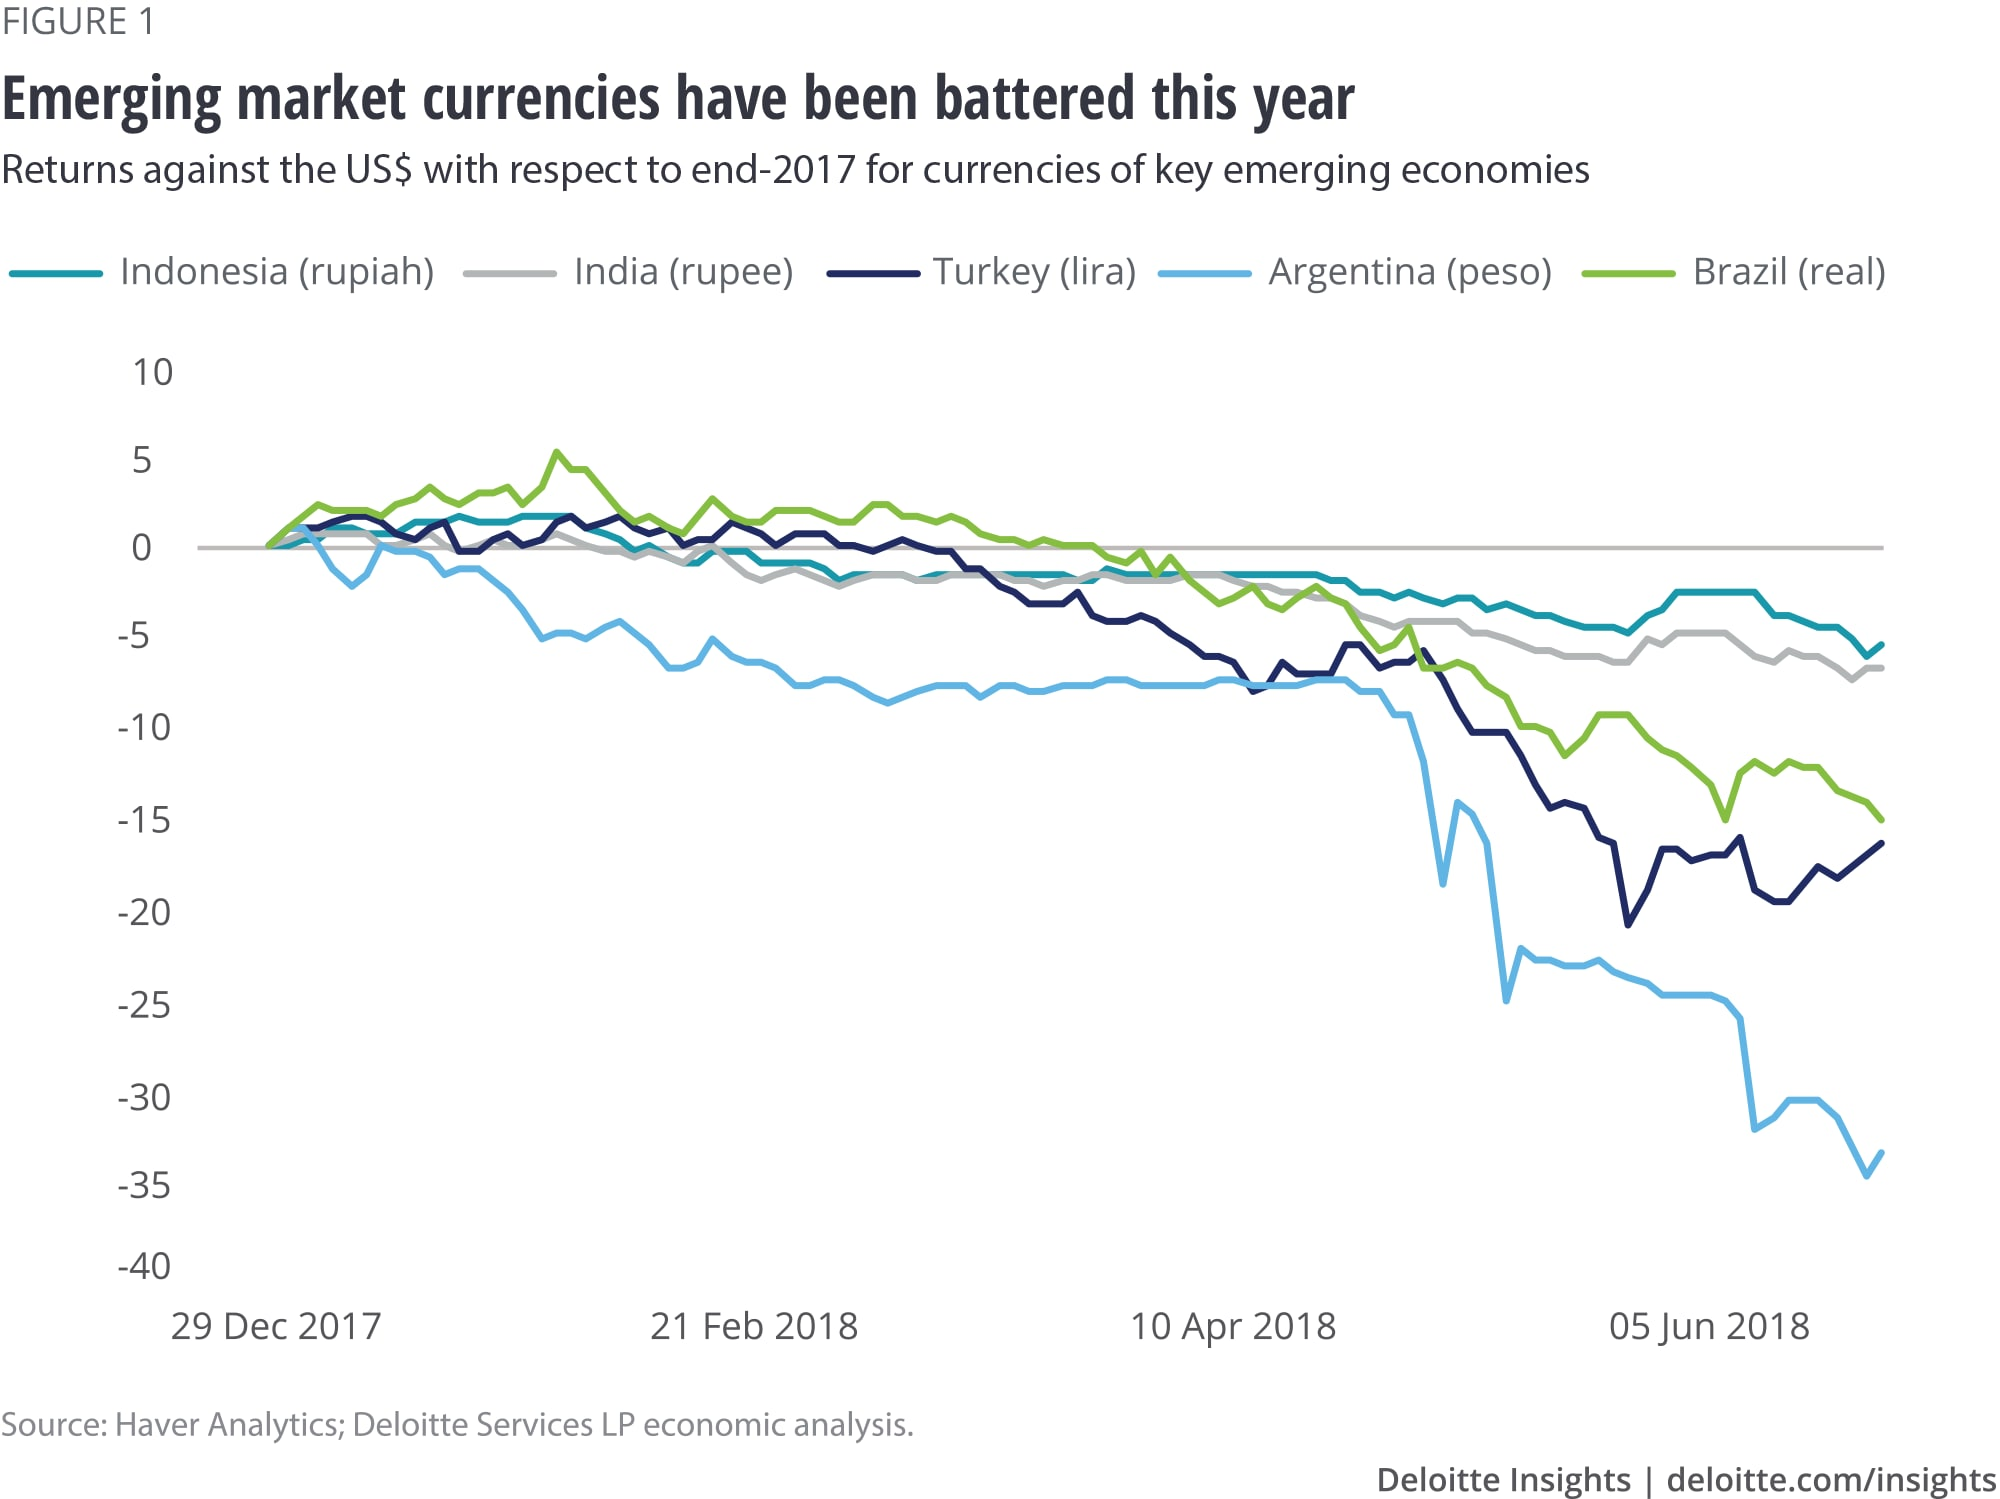 Emerging market currencies have been battered this year